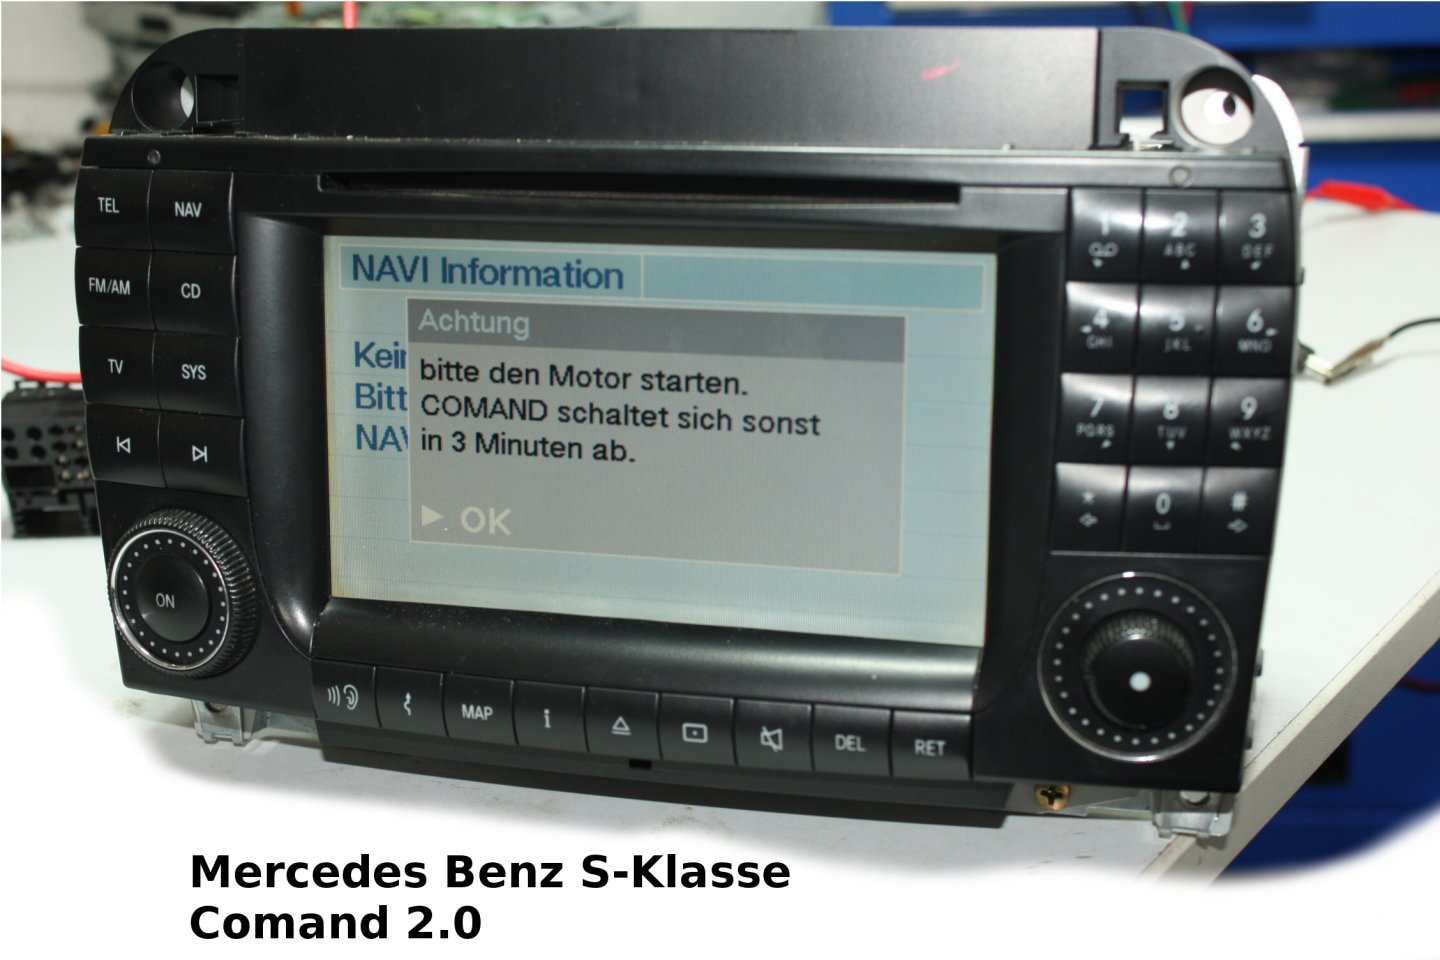 Mercedes Benz S-Klasse Navigation BP7